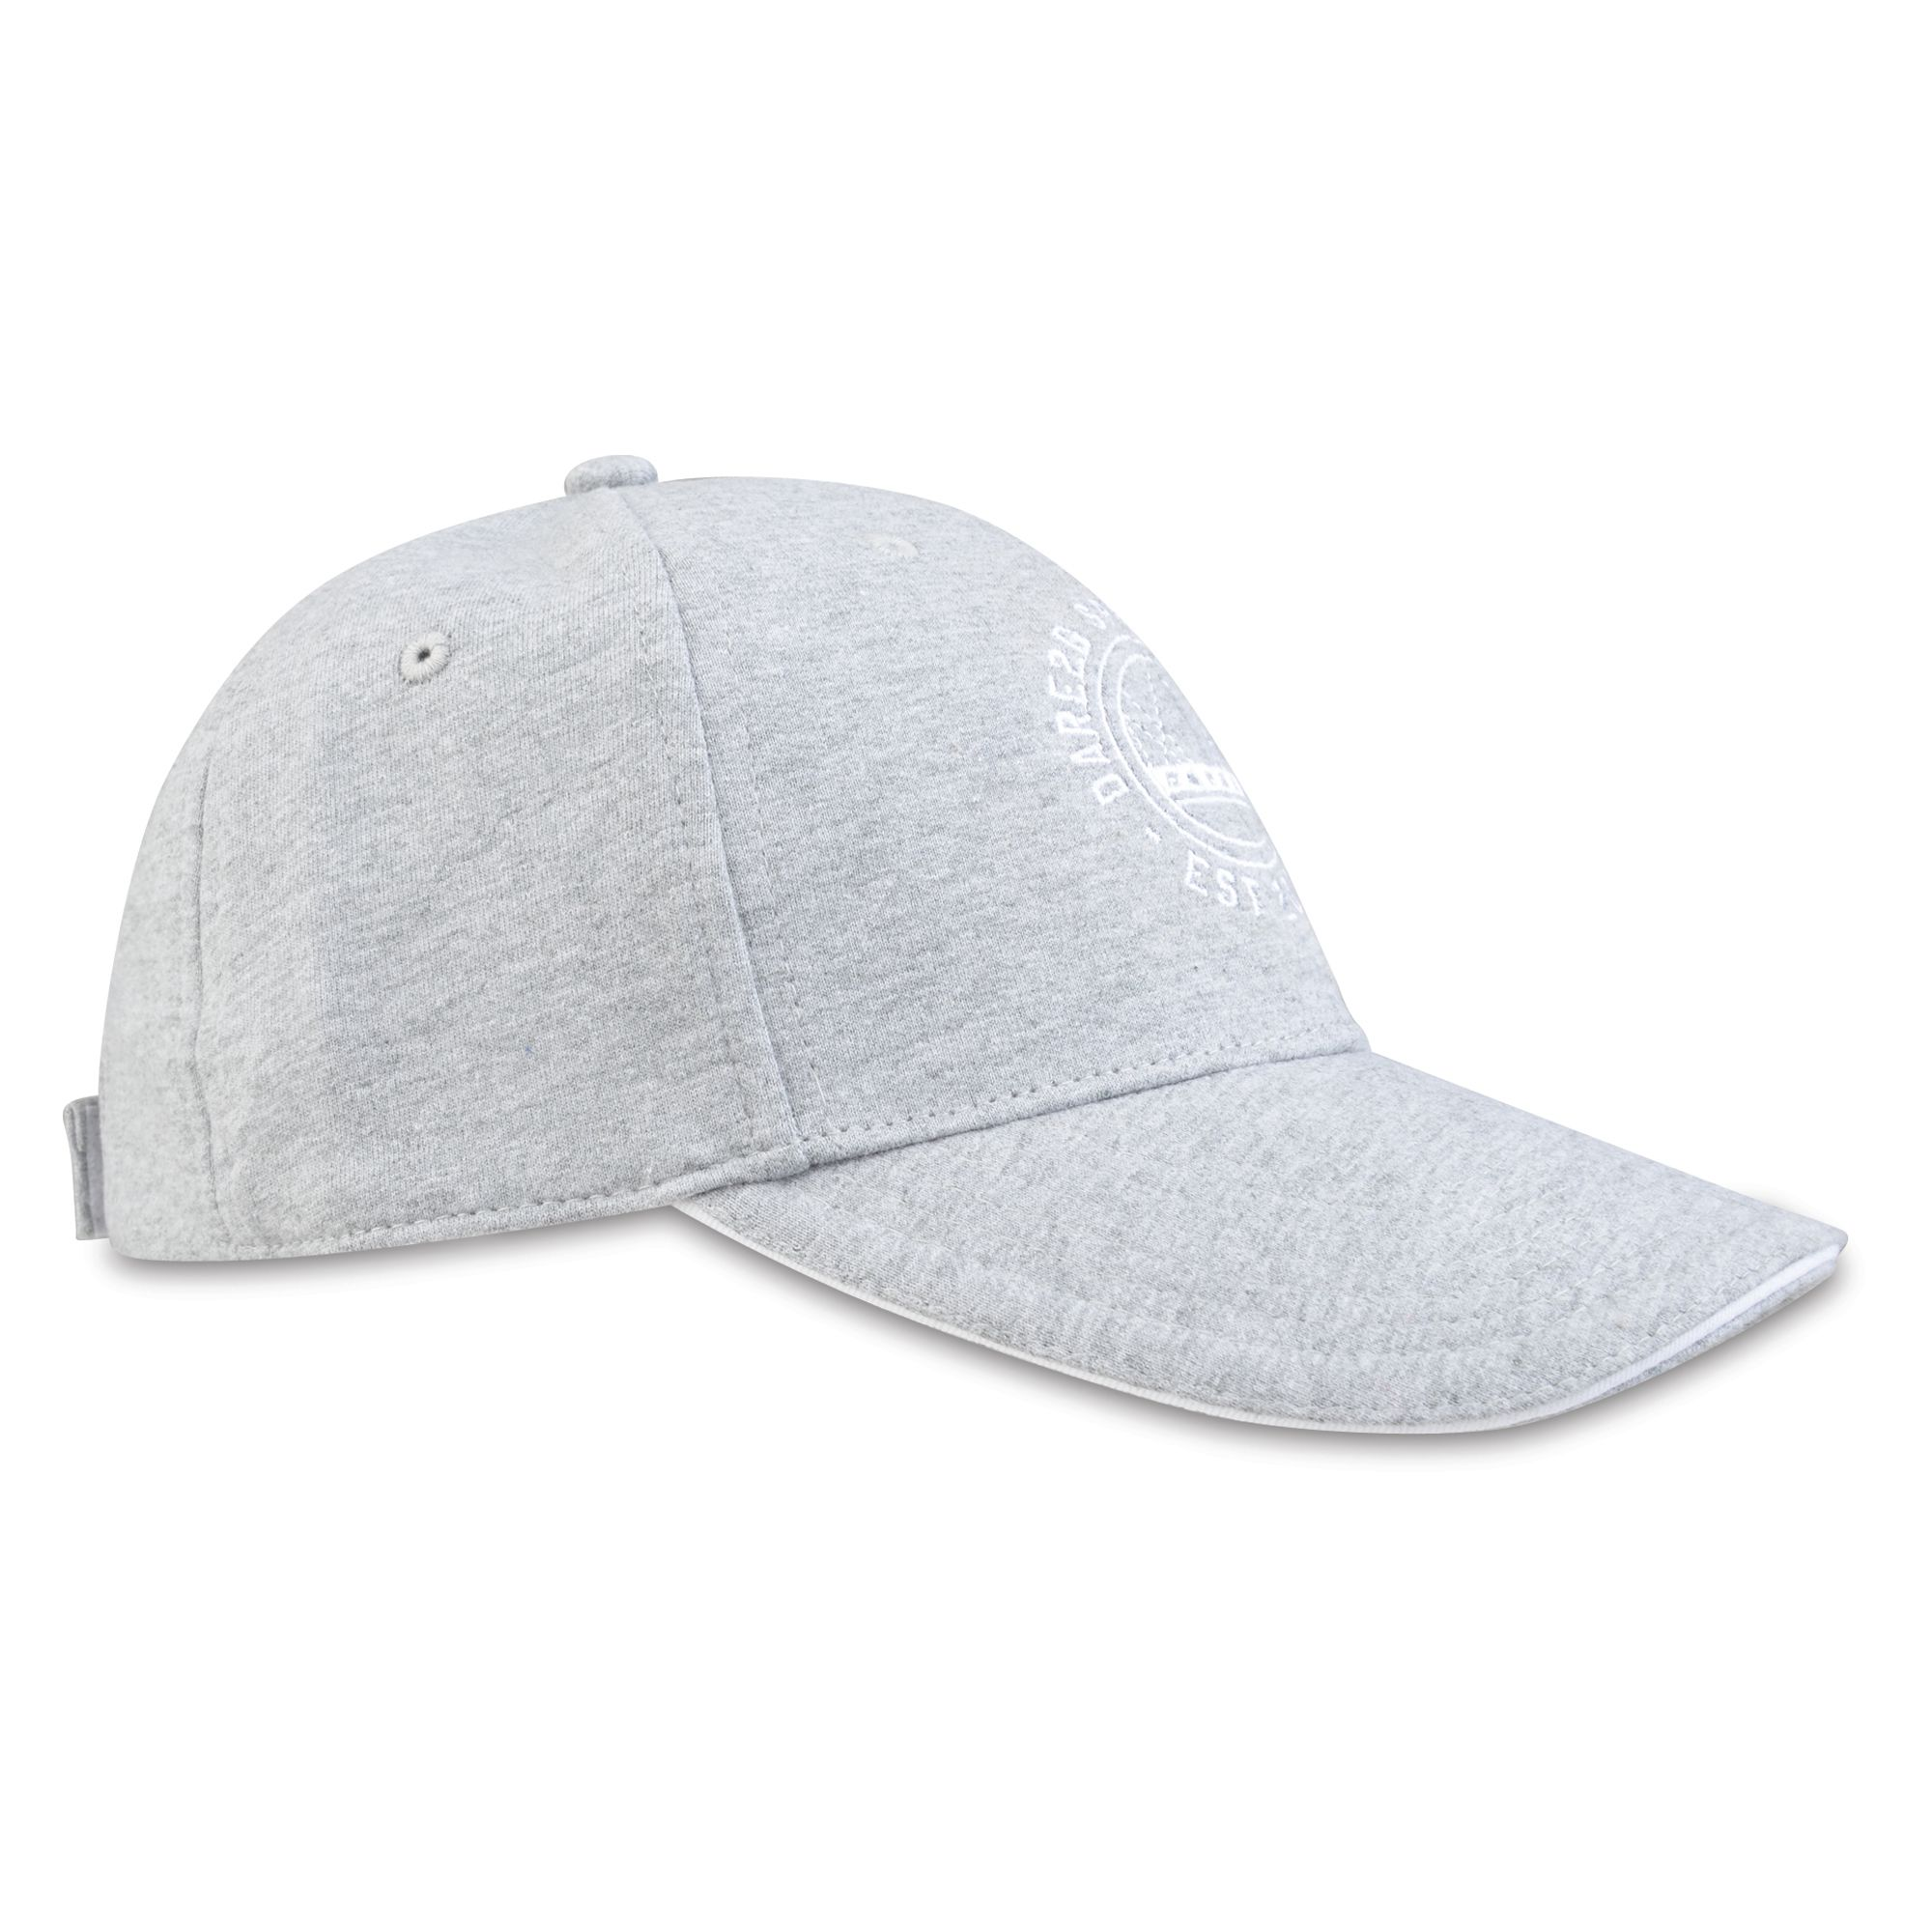 Image of Dare2b Baseball Cap »Dare2B Herren Kappe«